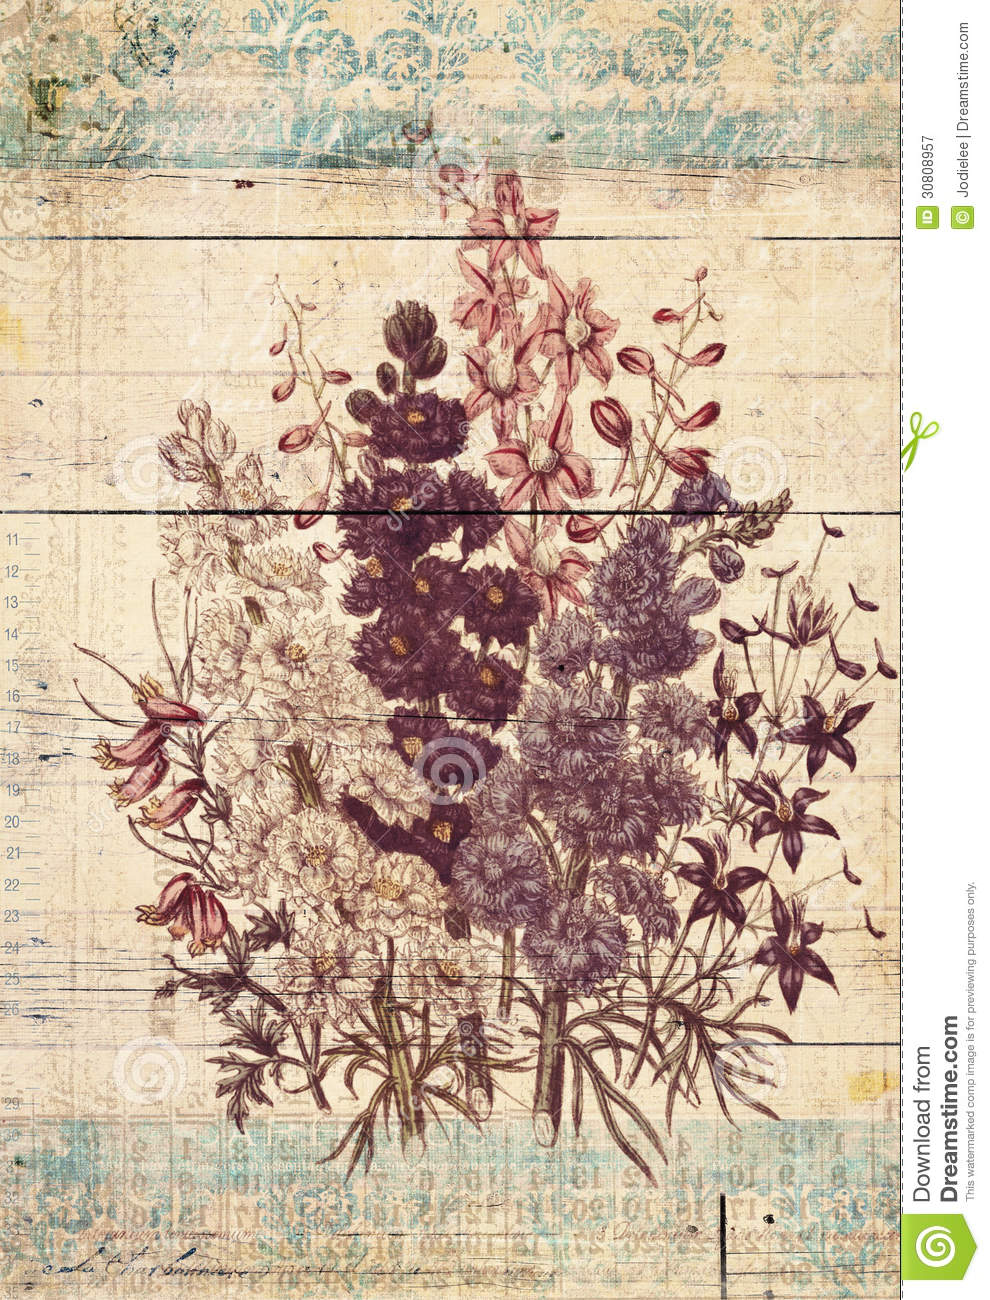 Flowers botanical vintage style wall art with textured background royalty fre - Vintage style images ...